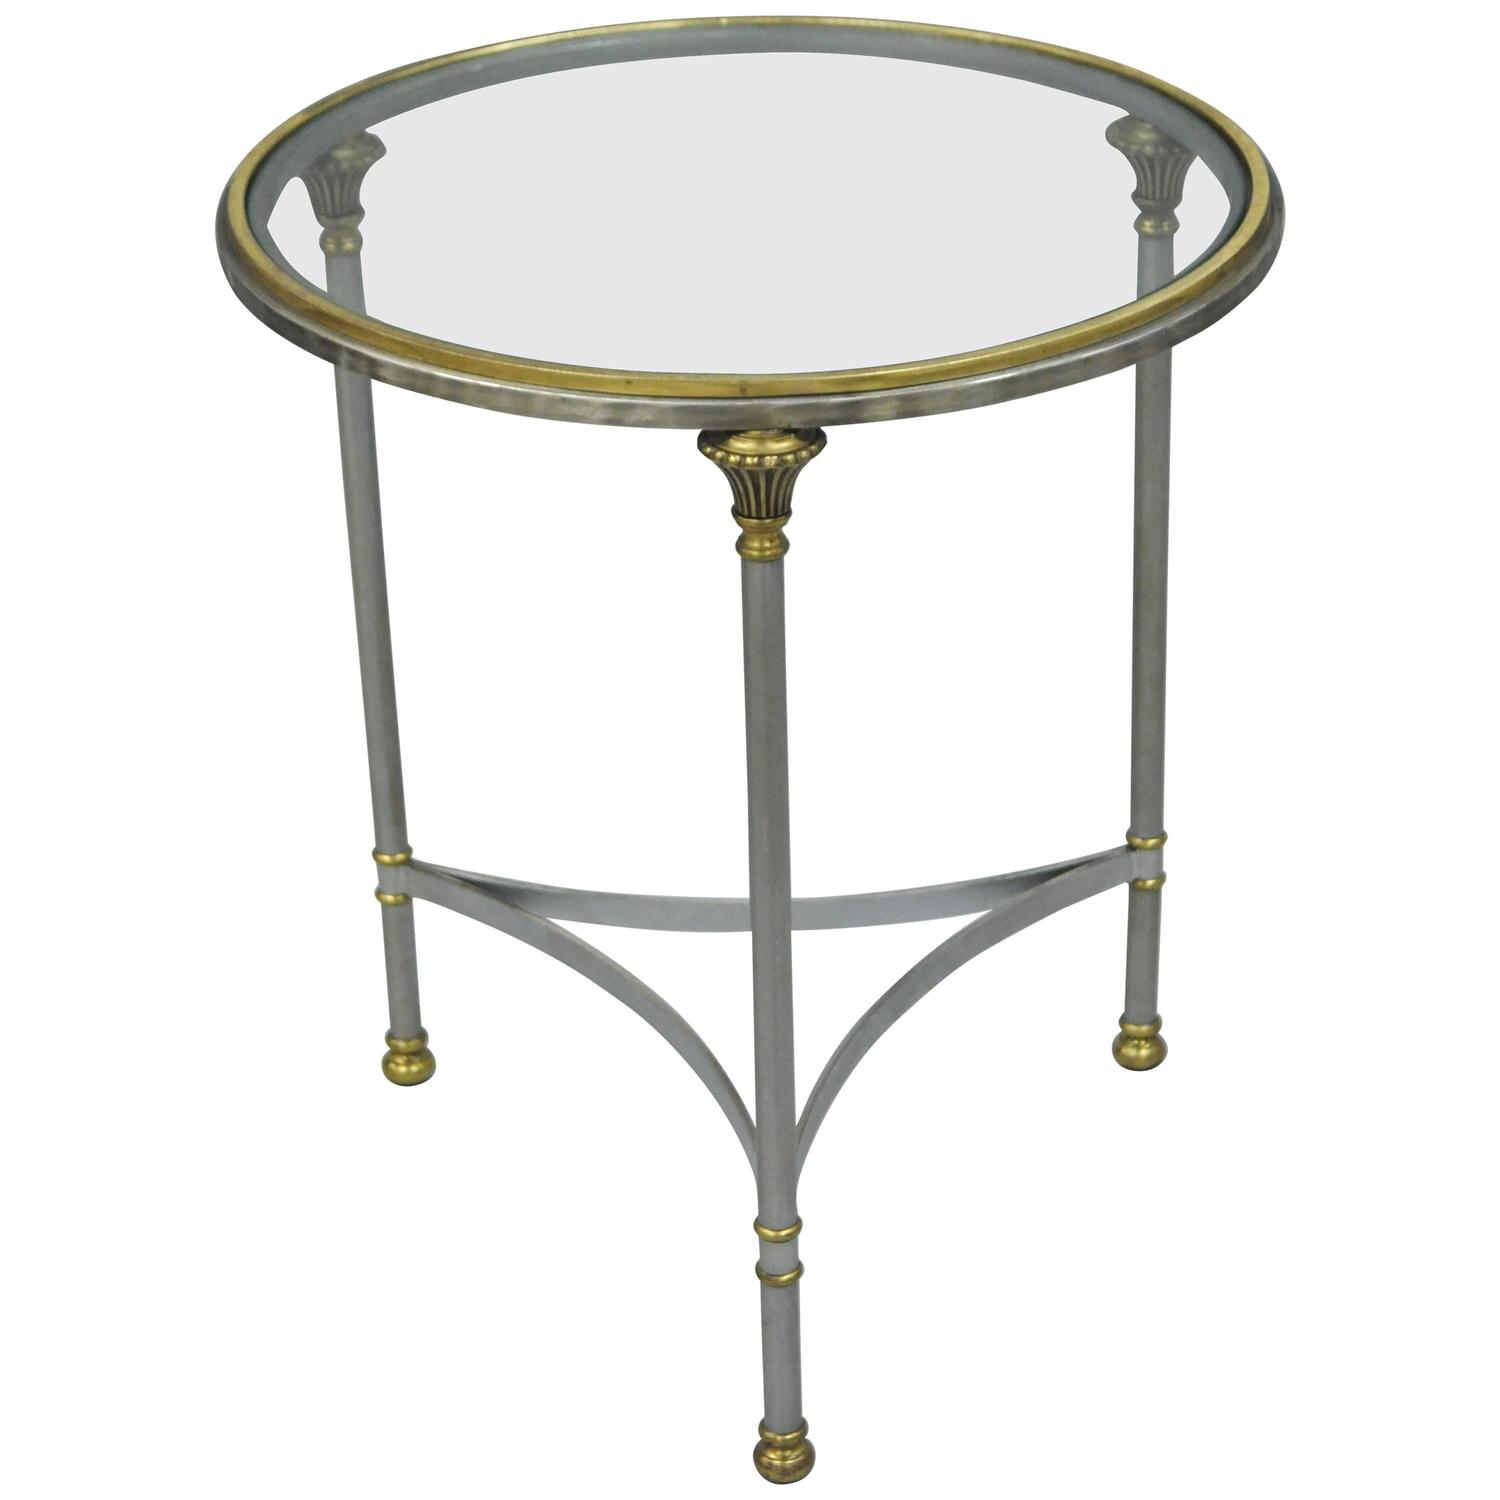 Vintage Italian Brushed Steel and Brass Round Directoire